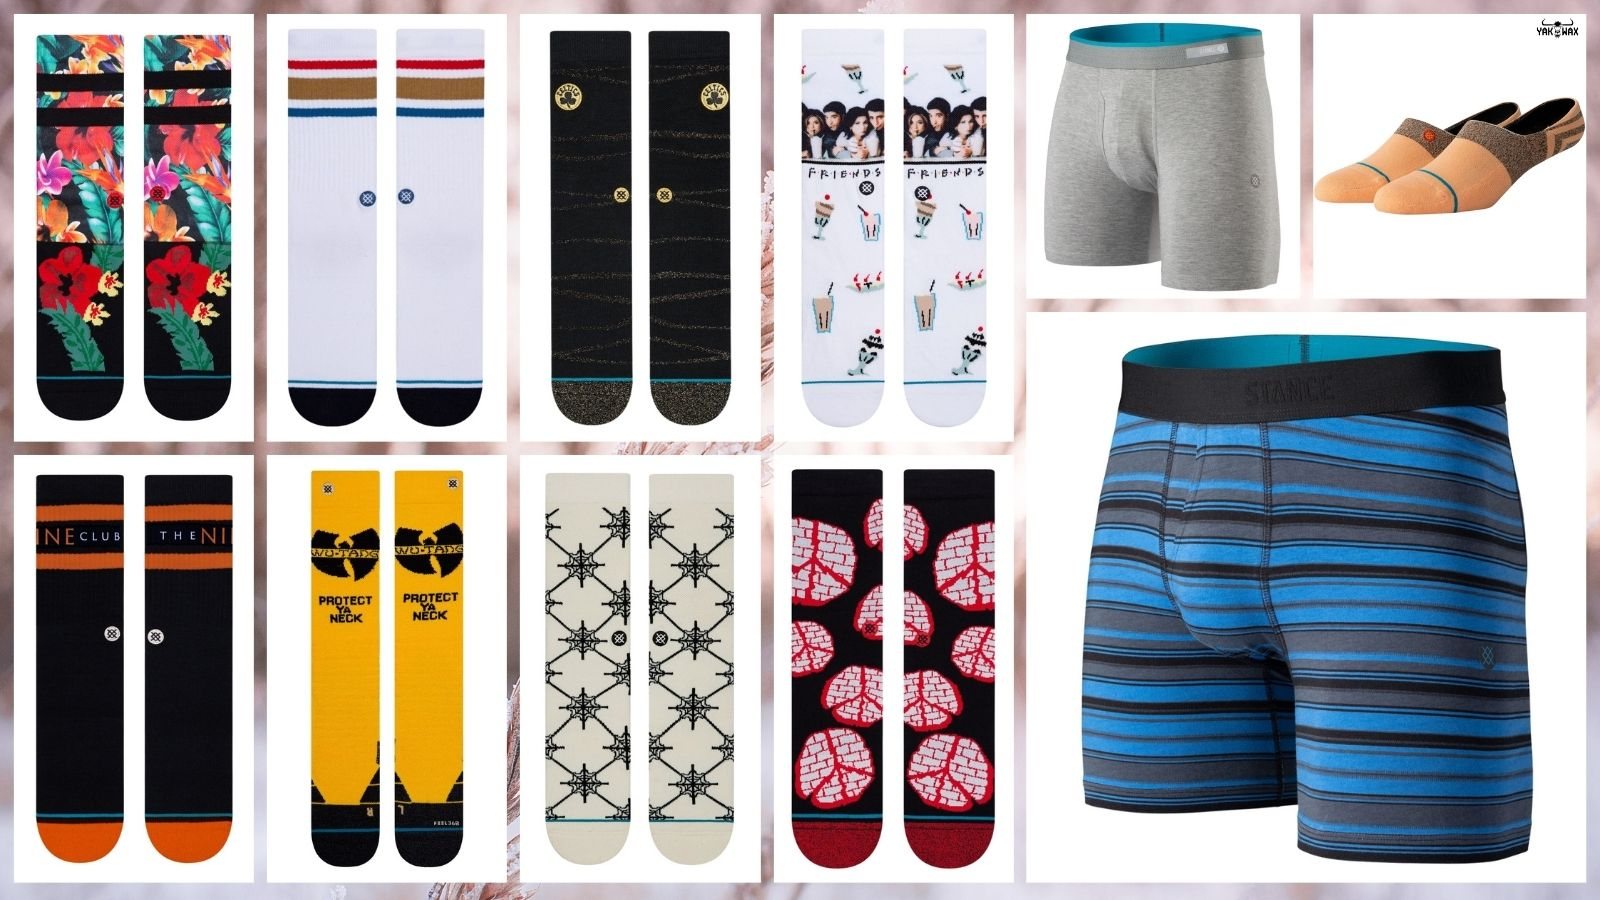 Stance-Socks-Boxers-Winter-2020-2021